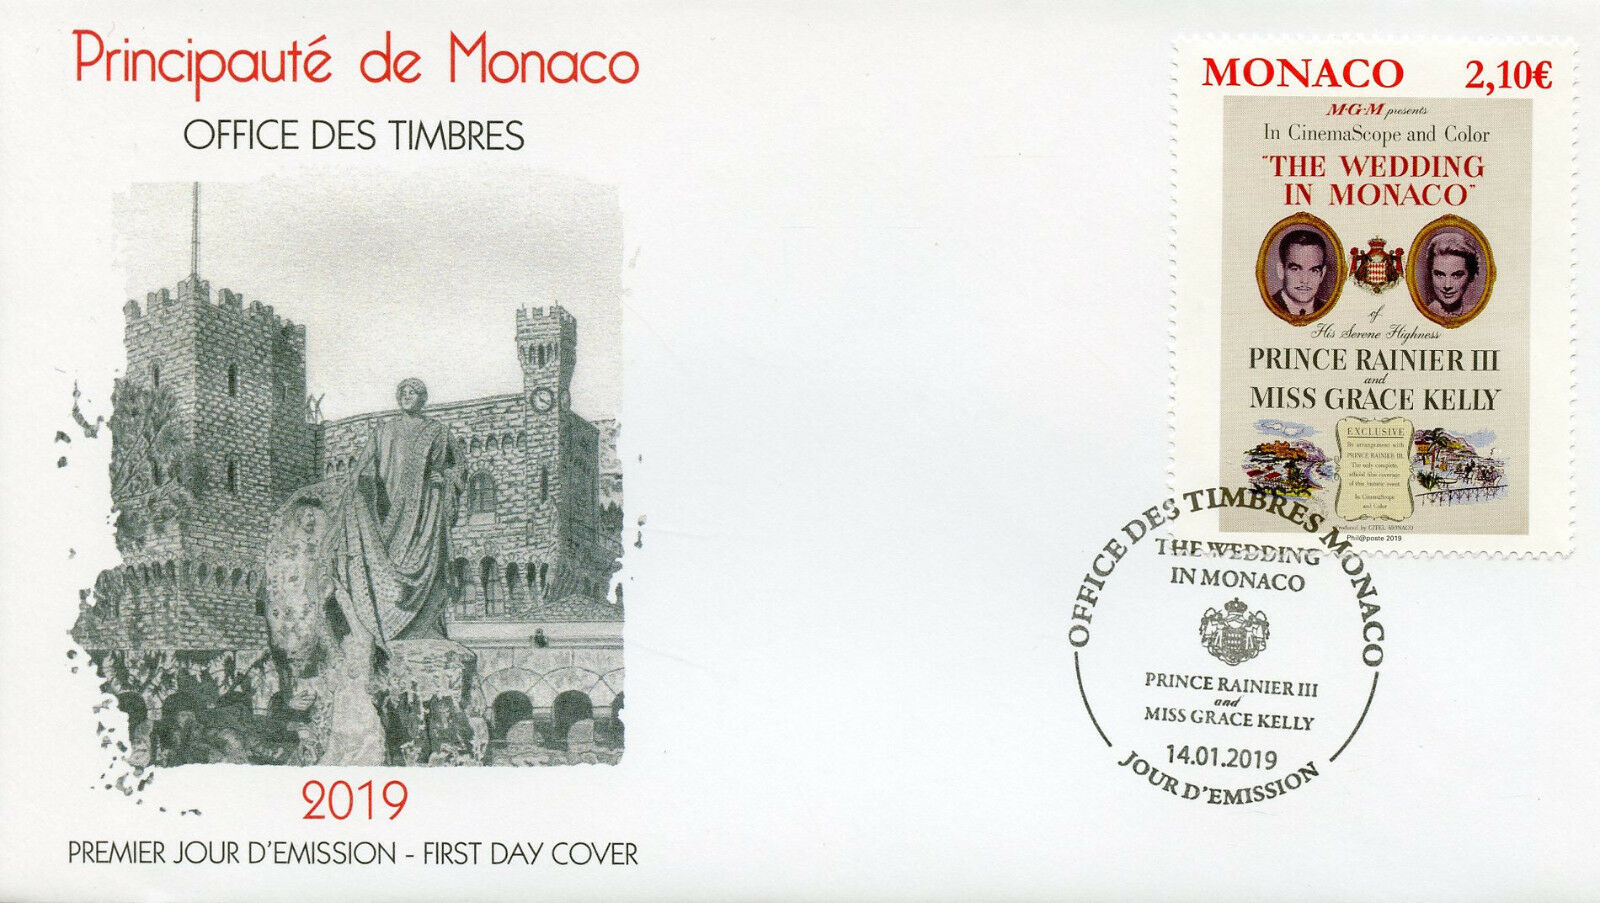 Monaco - Grace Kelly Movies: The Wedding in Monaco (January 14, 2019) first day cover